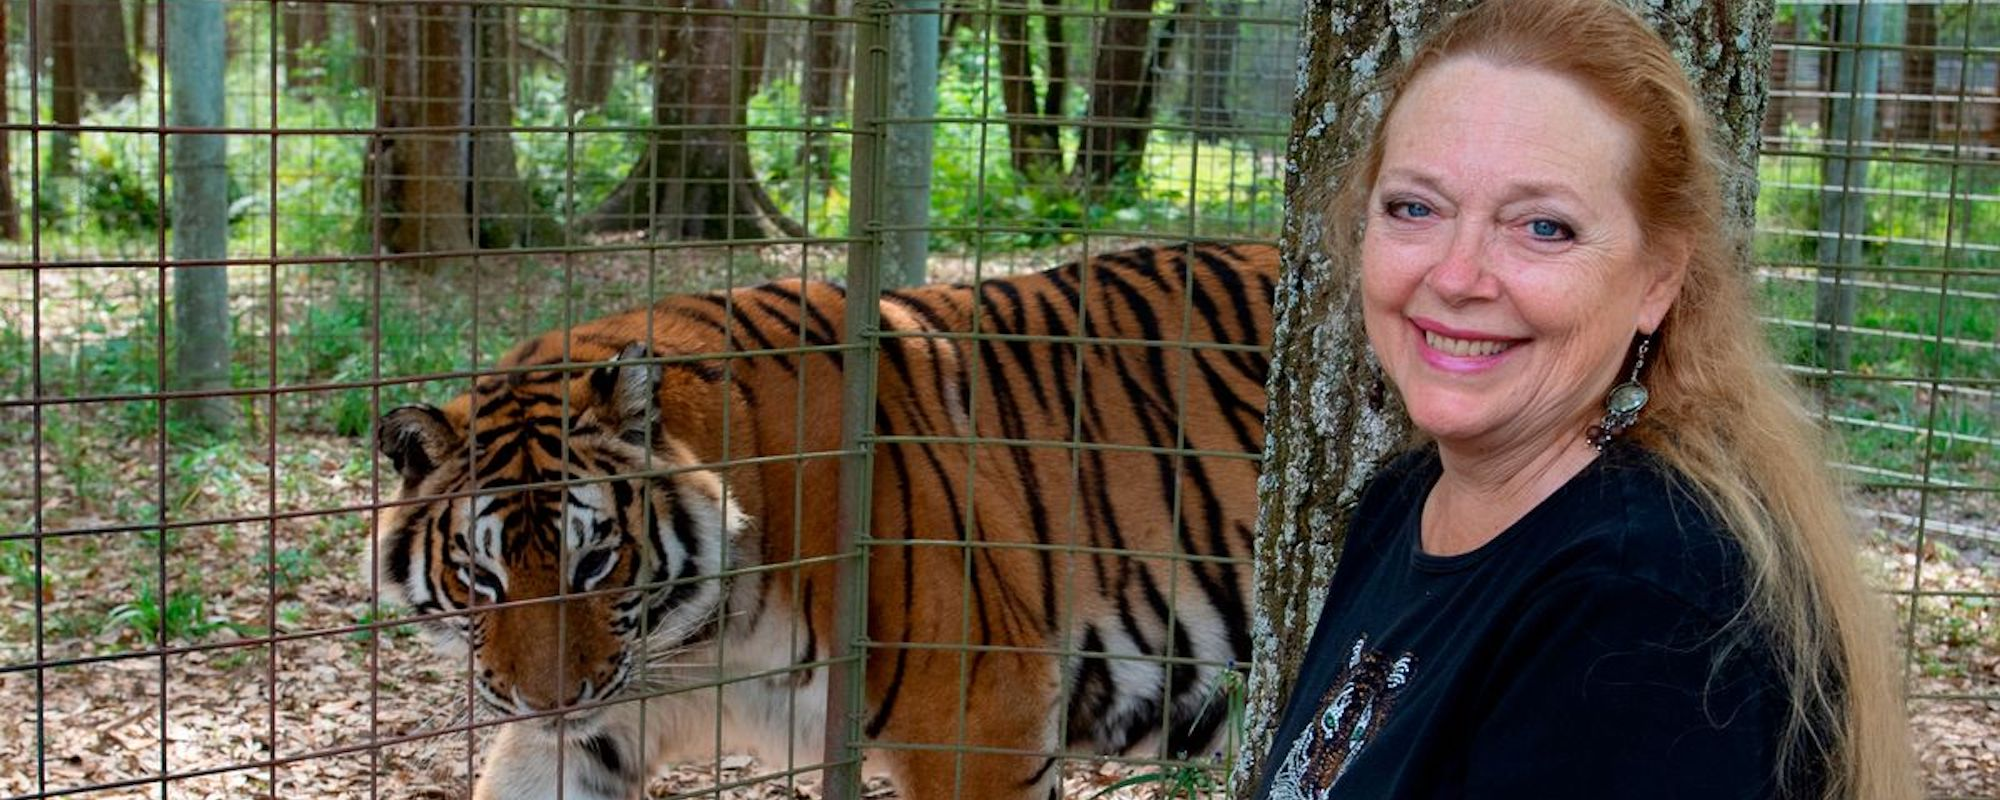 Carole Baskin Smiling With A Tiger